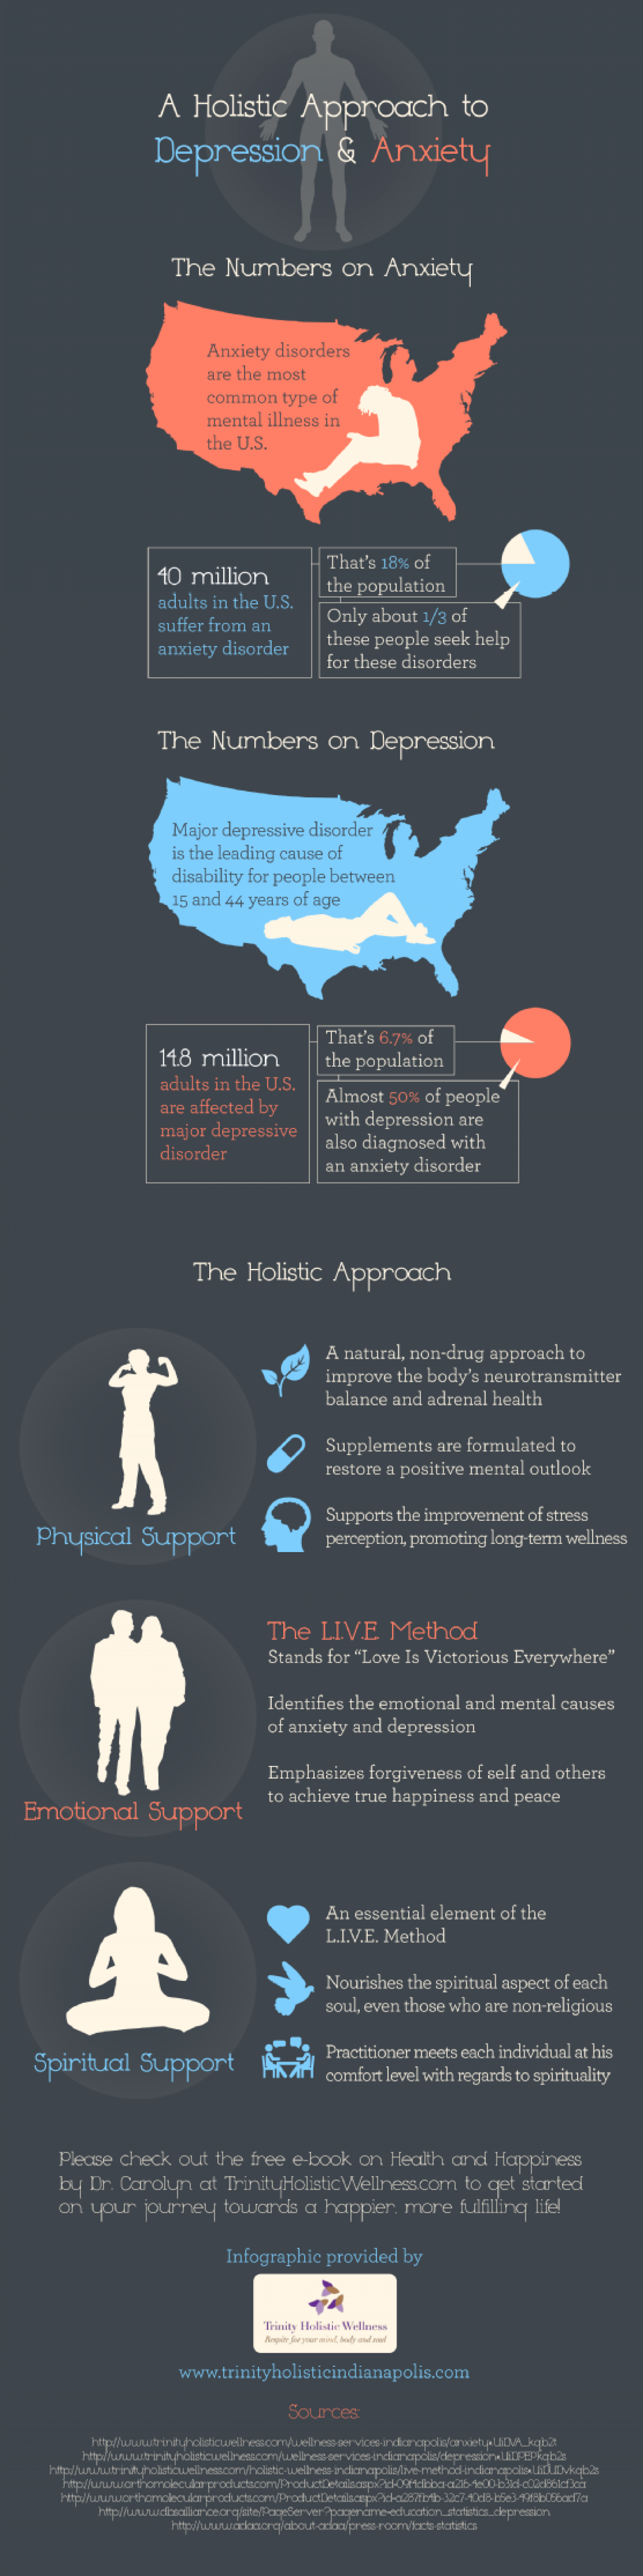 A Holistic Approach to Depression and Anxiety Infographic